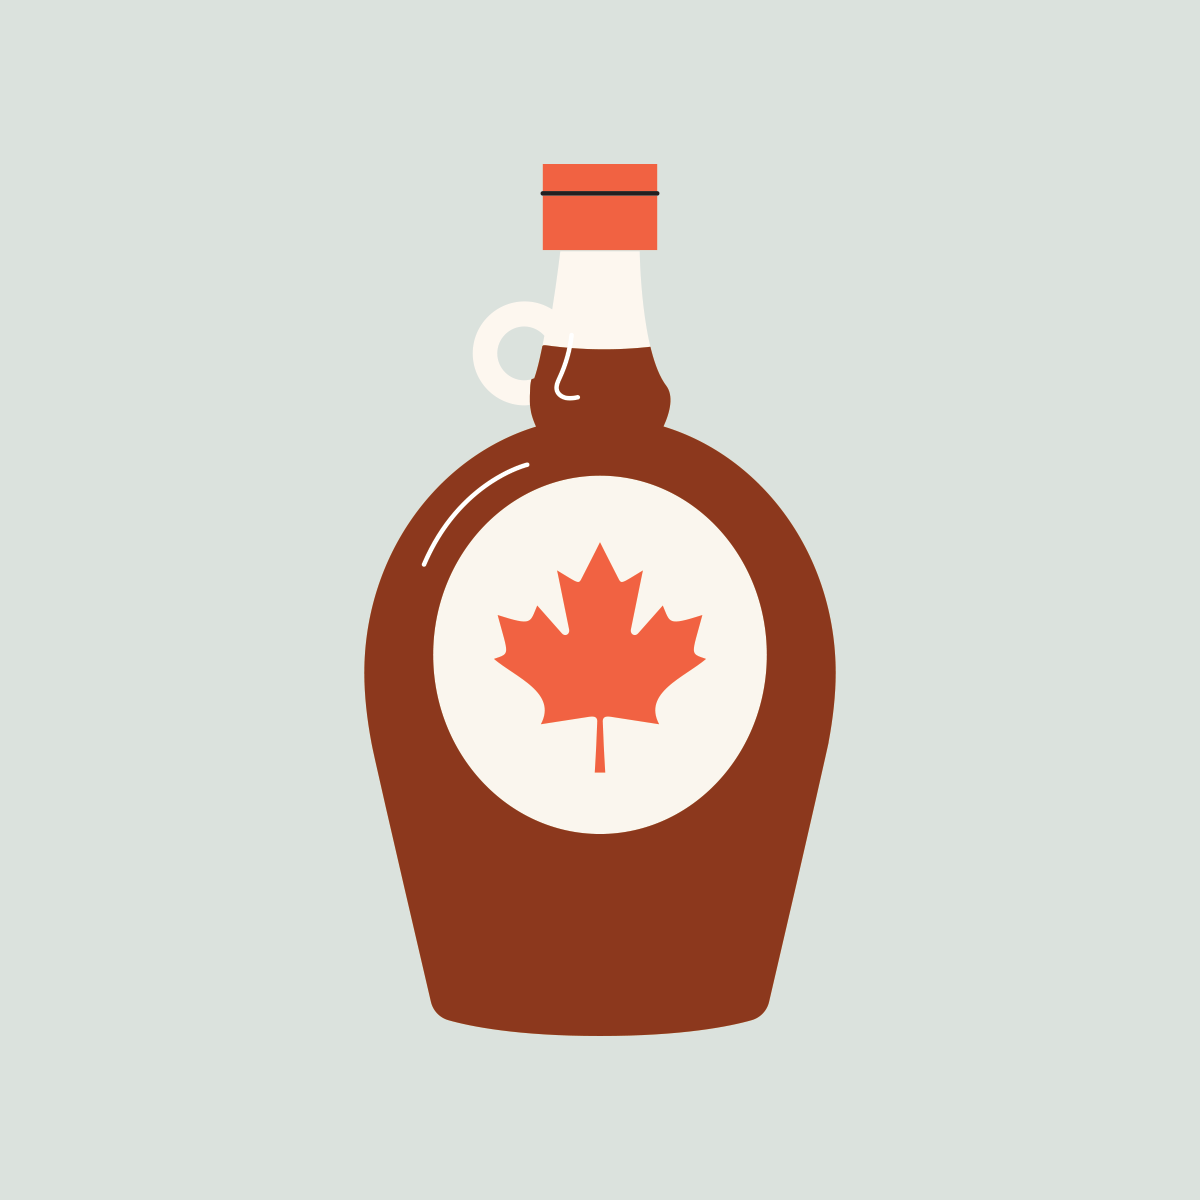 82 maple syrup